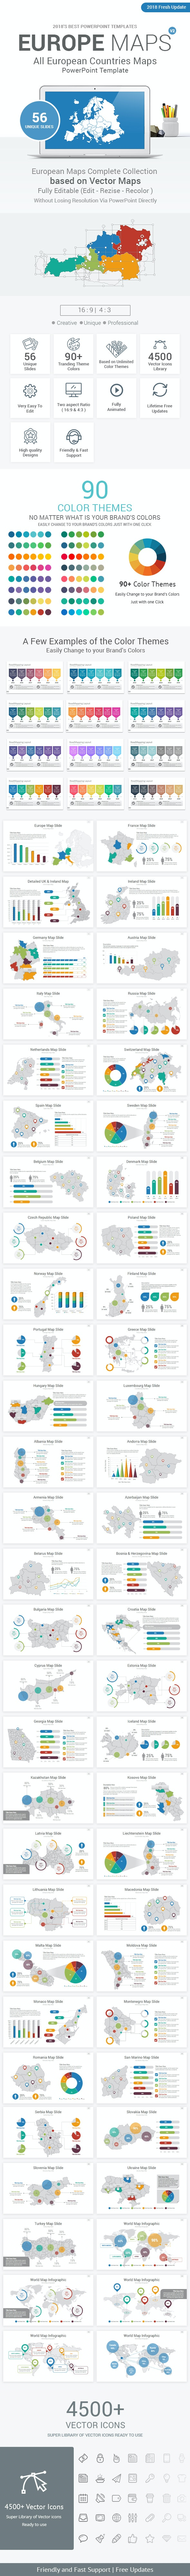 Europe Maps PowerPoint Presentation Template - Business PowerPoint Templates